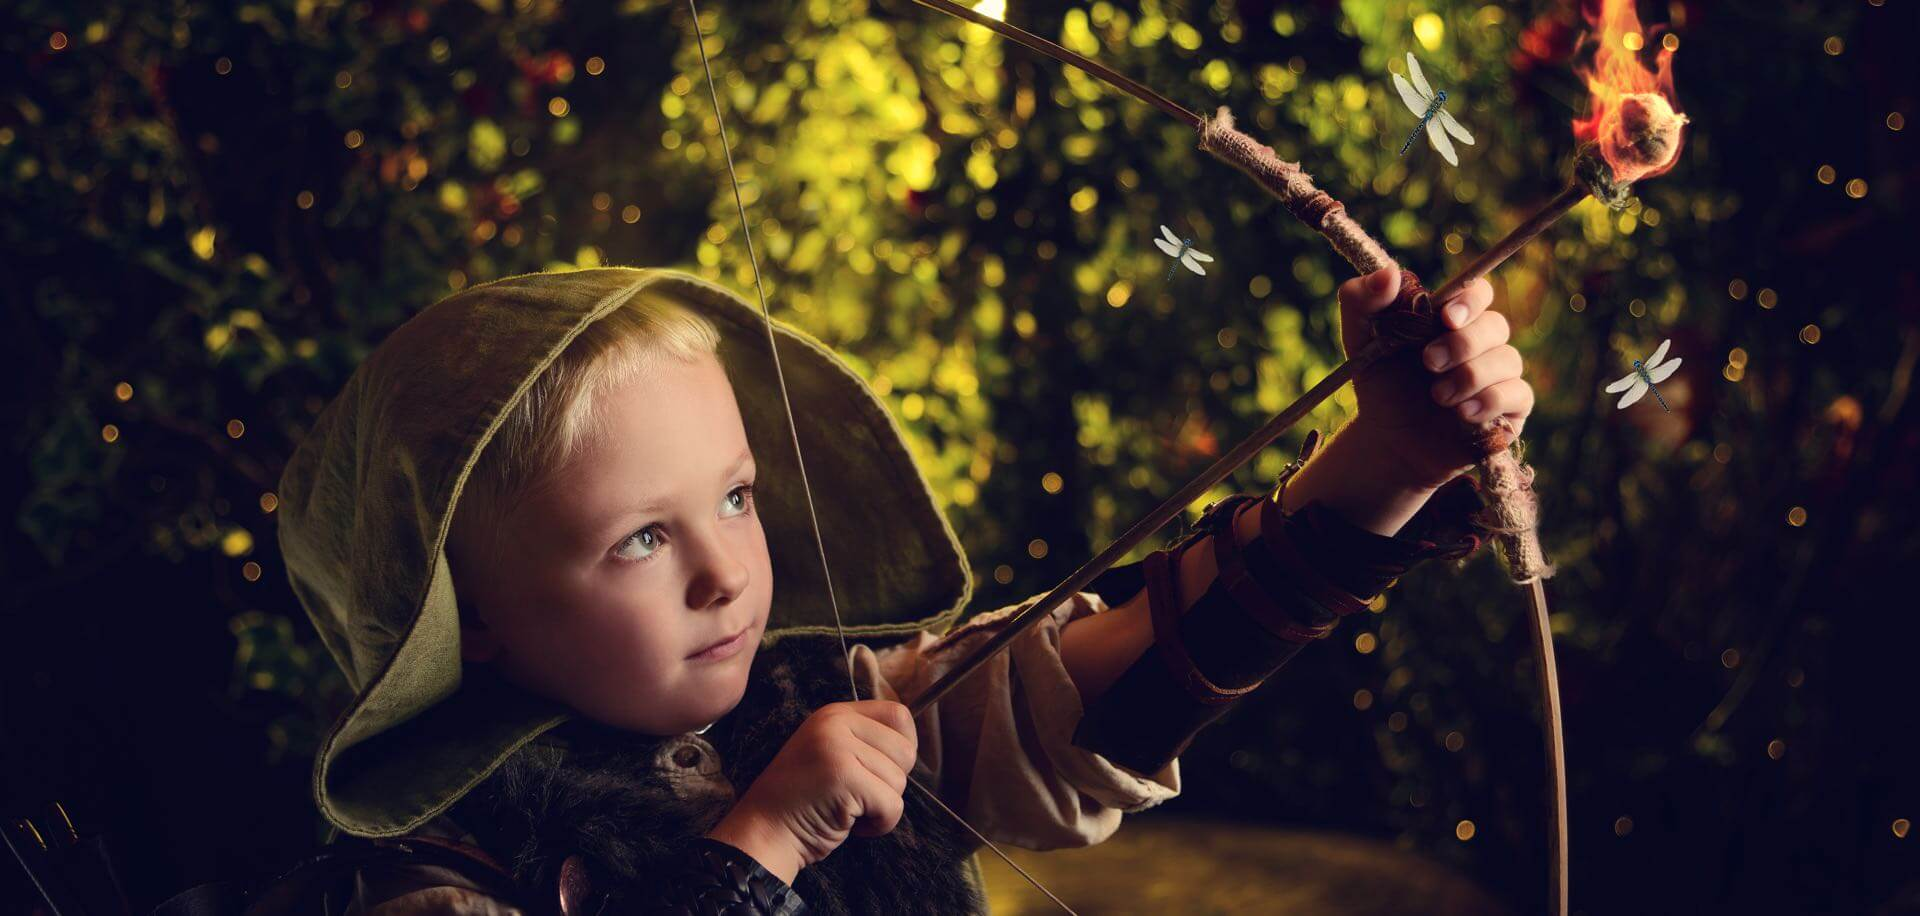 Our Woodland theme is ideal for Robin Hood and The Hunger Games shoots